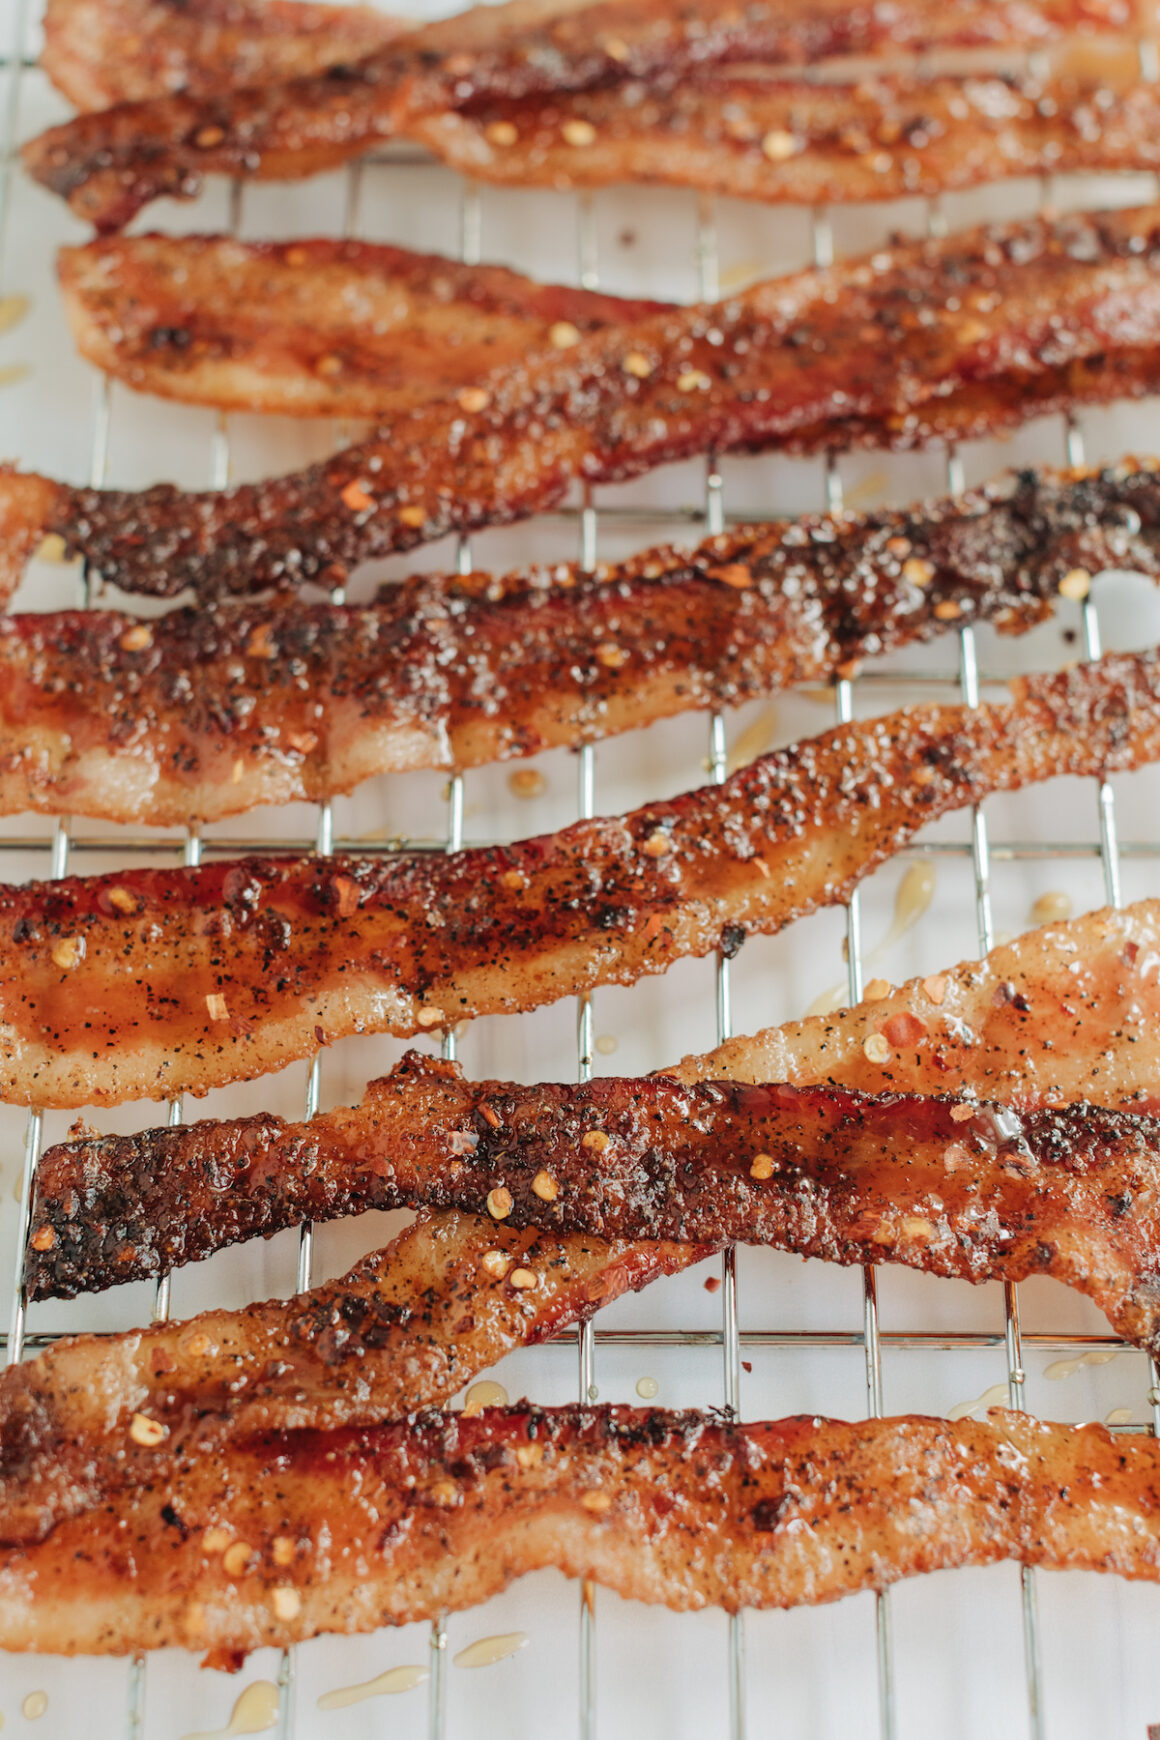 Candied Million Dollar bacon on a baking rack